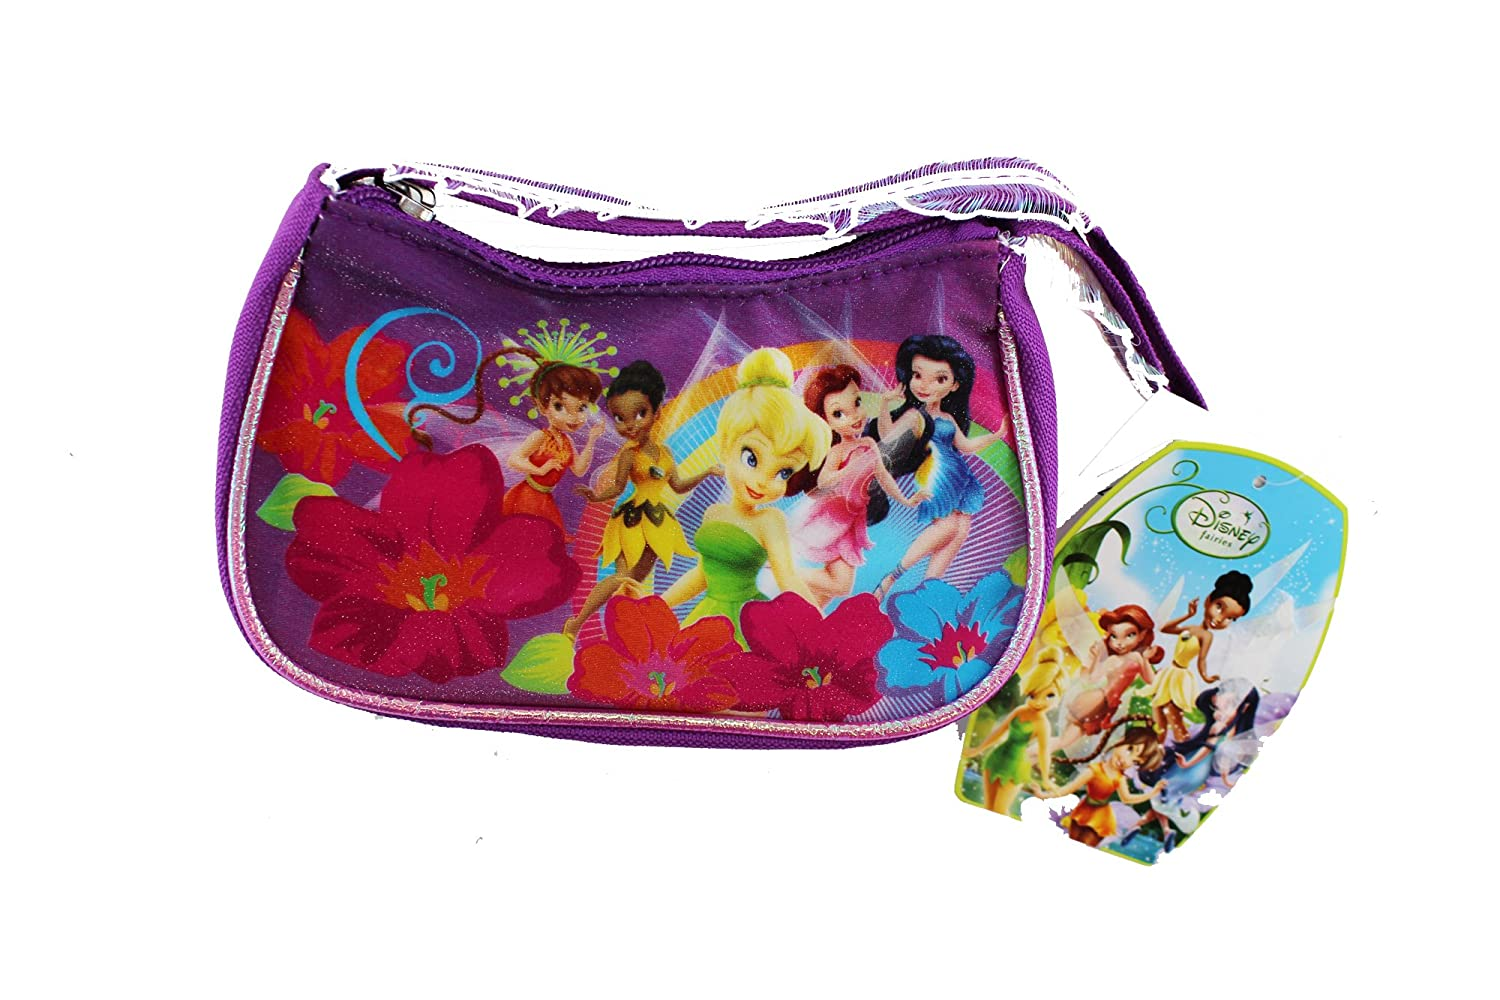 Disney Fairies Cosmetic Pouch Purse